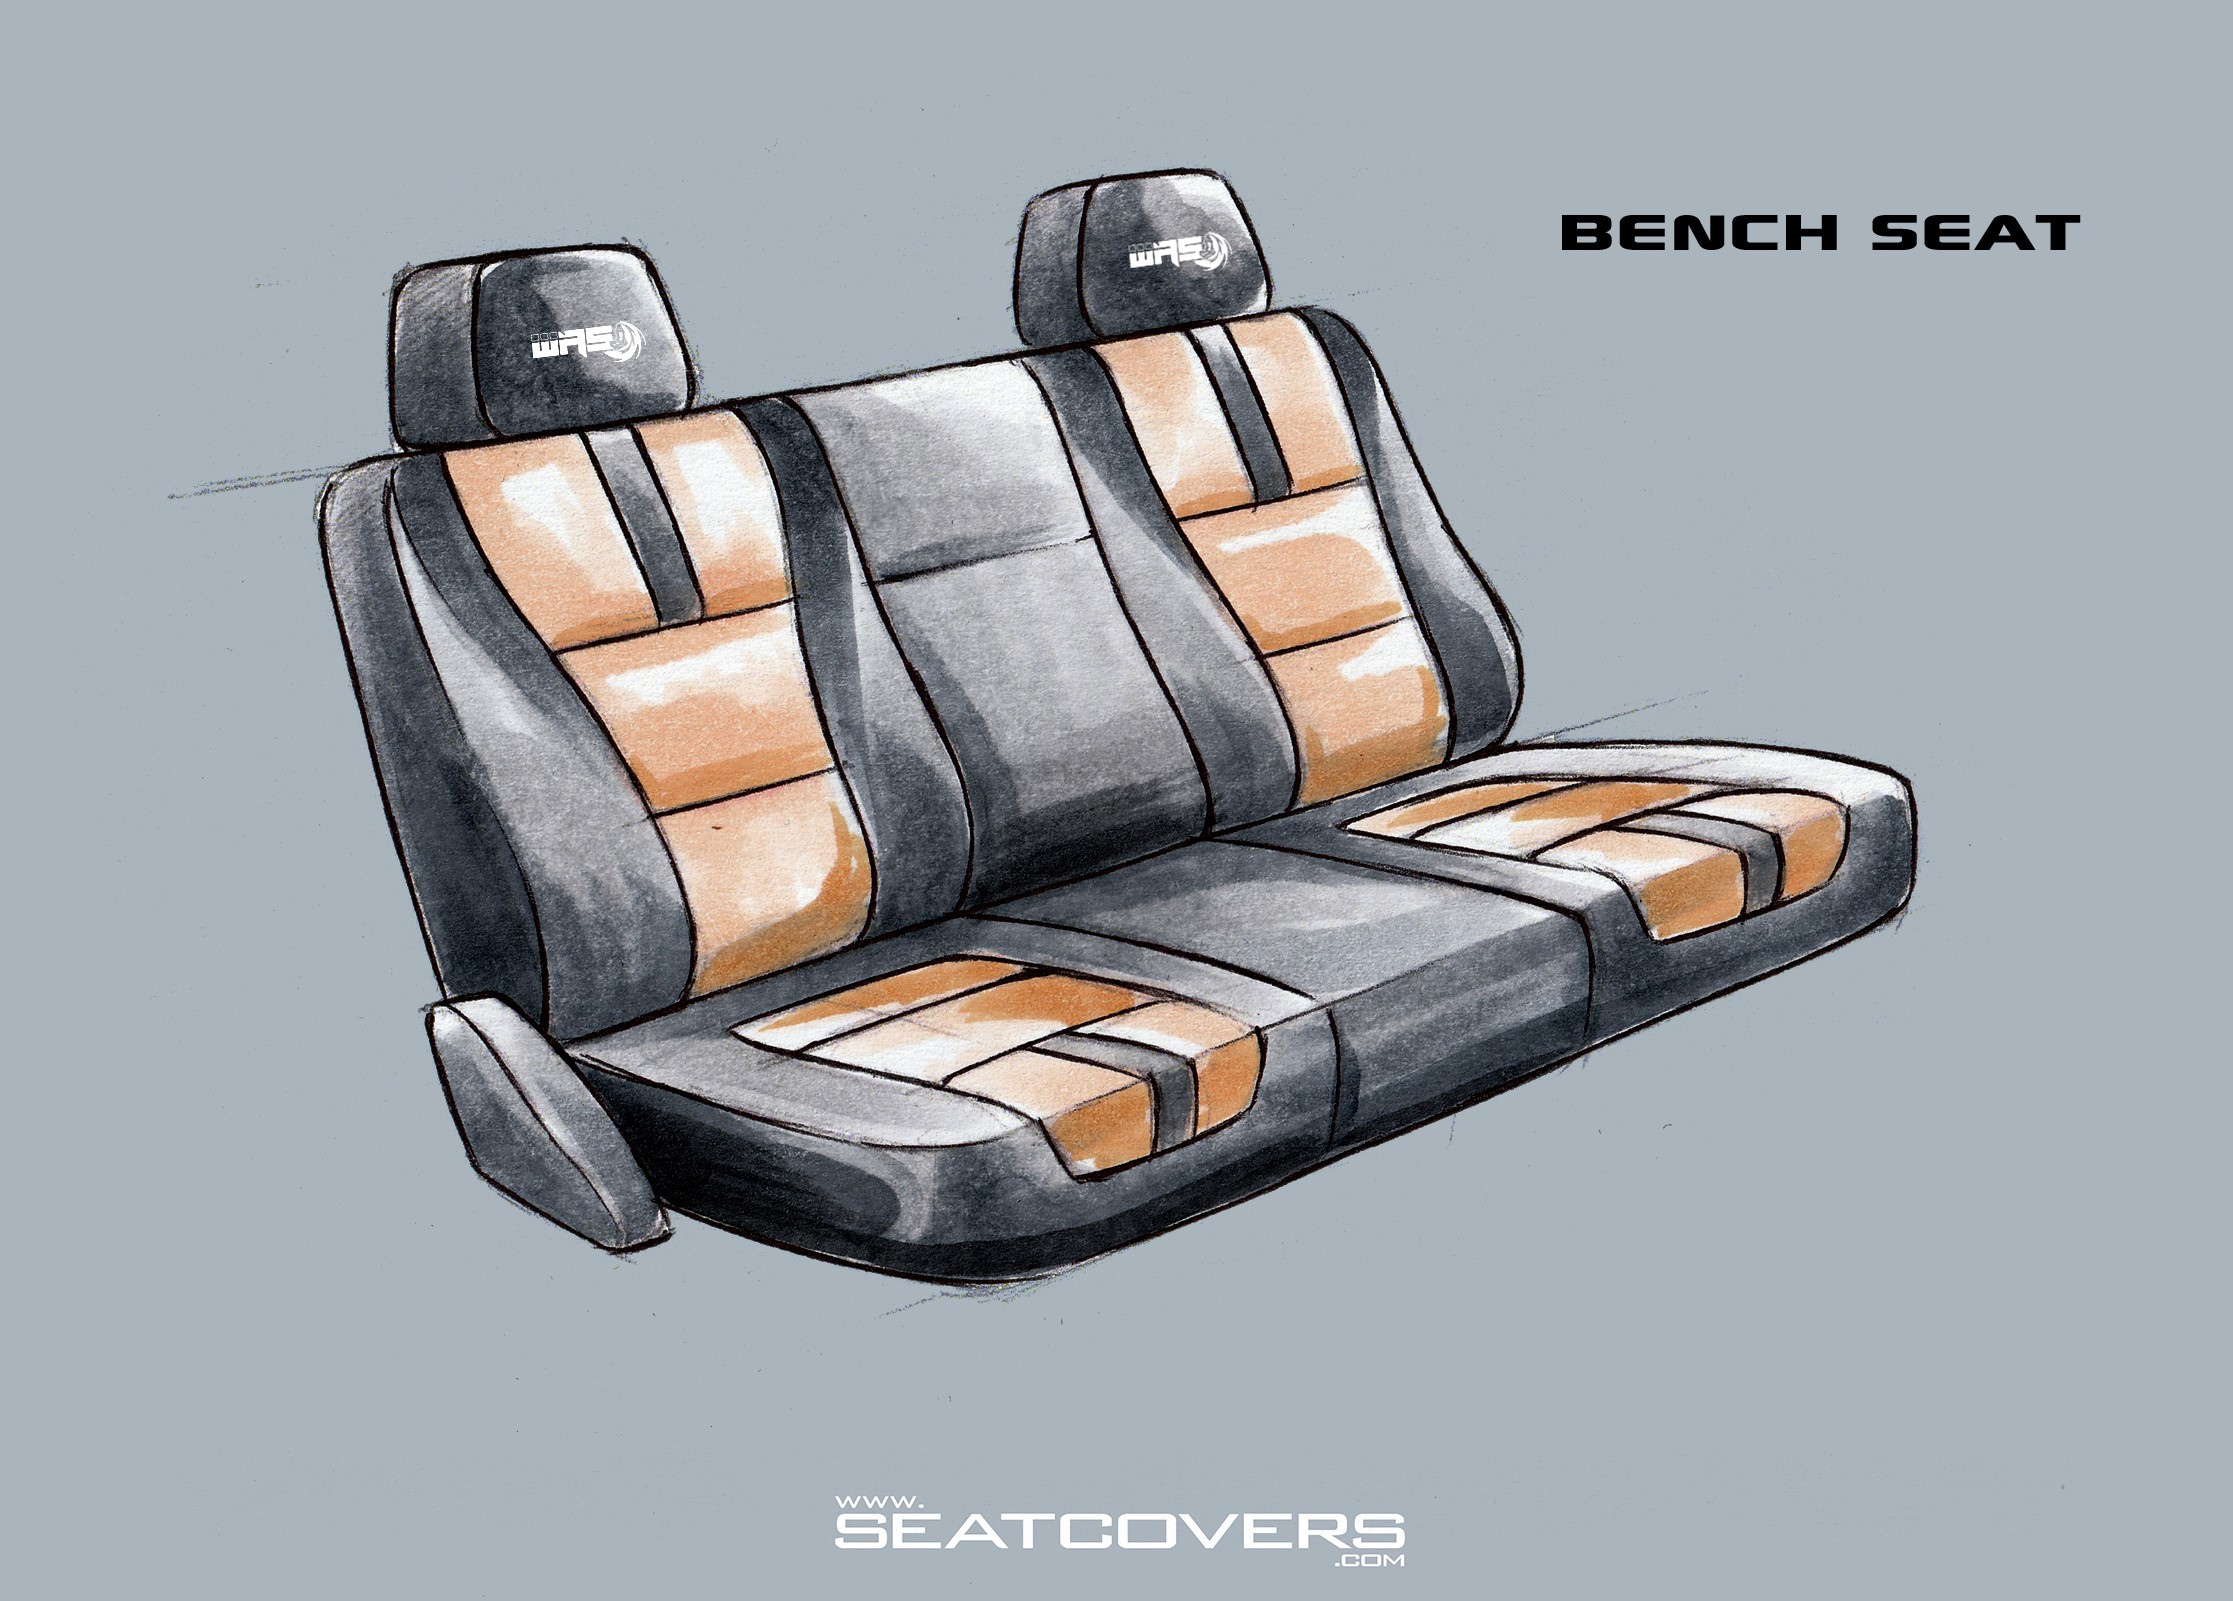 Jeep Wrangler seat covers Wrangler seat cover Jeep wrangler rear seat cover seatcovers.com